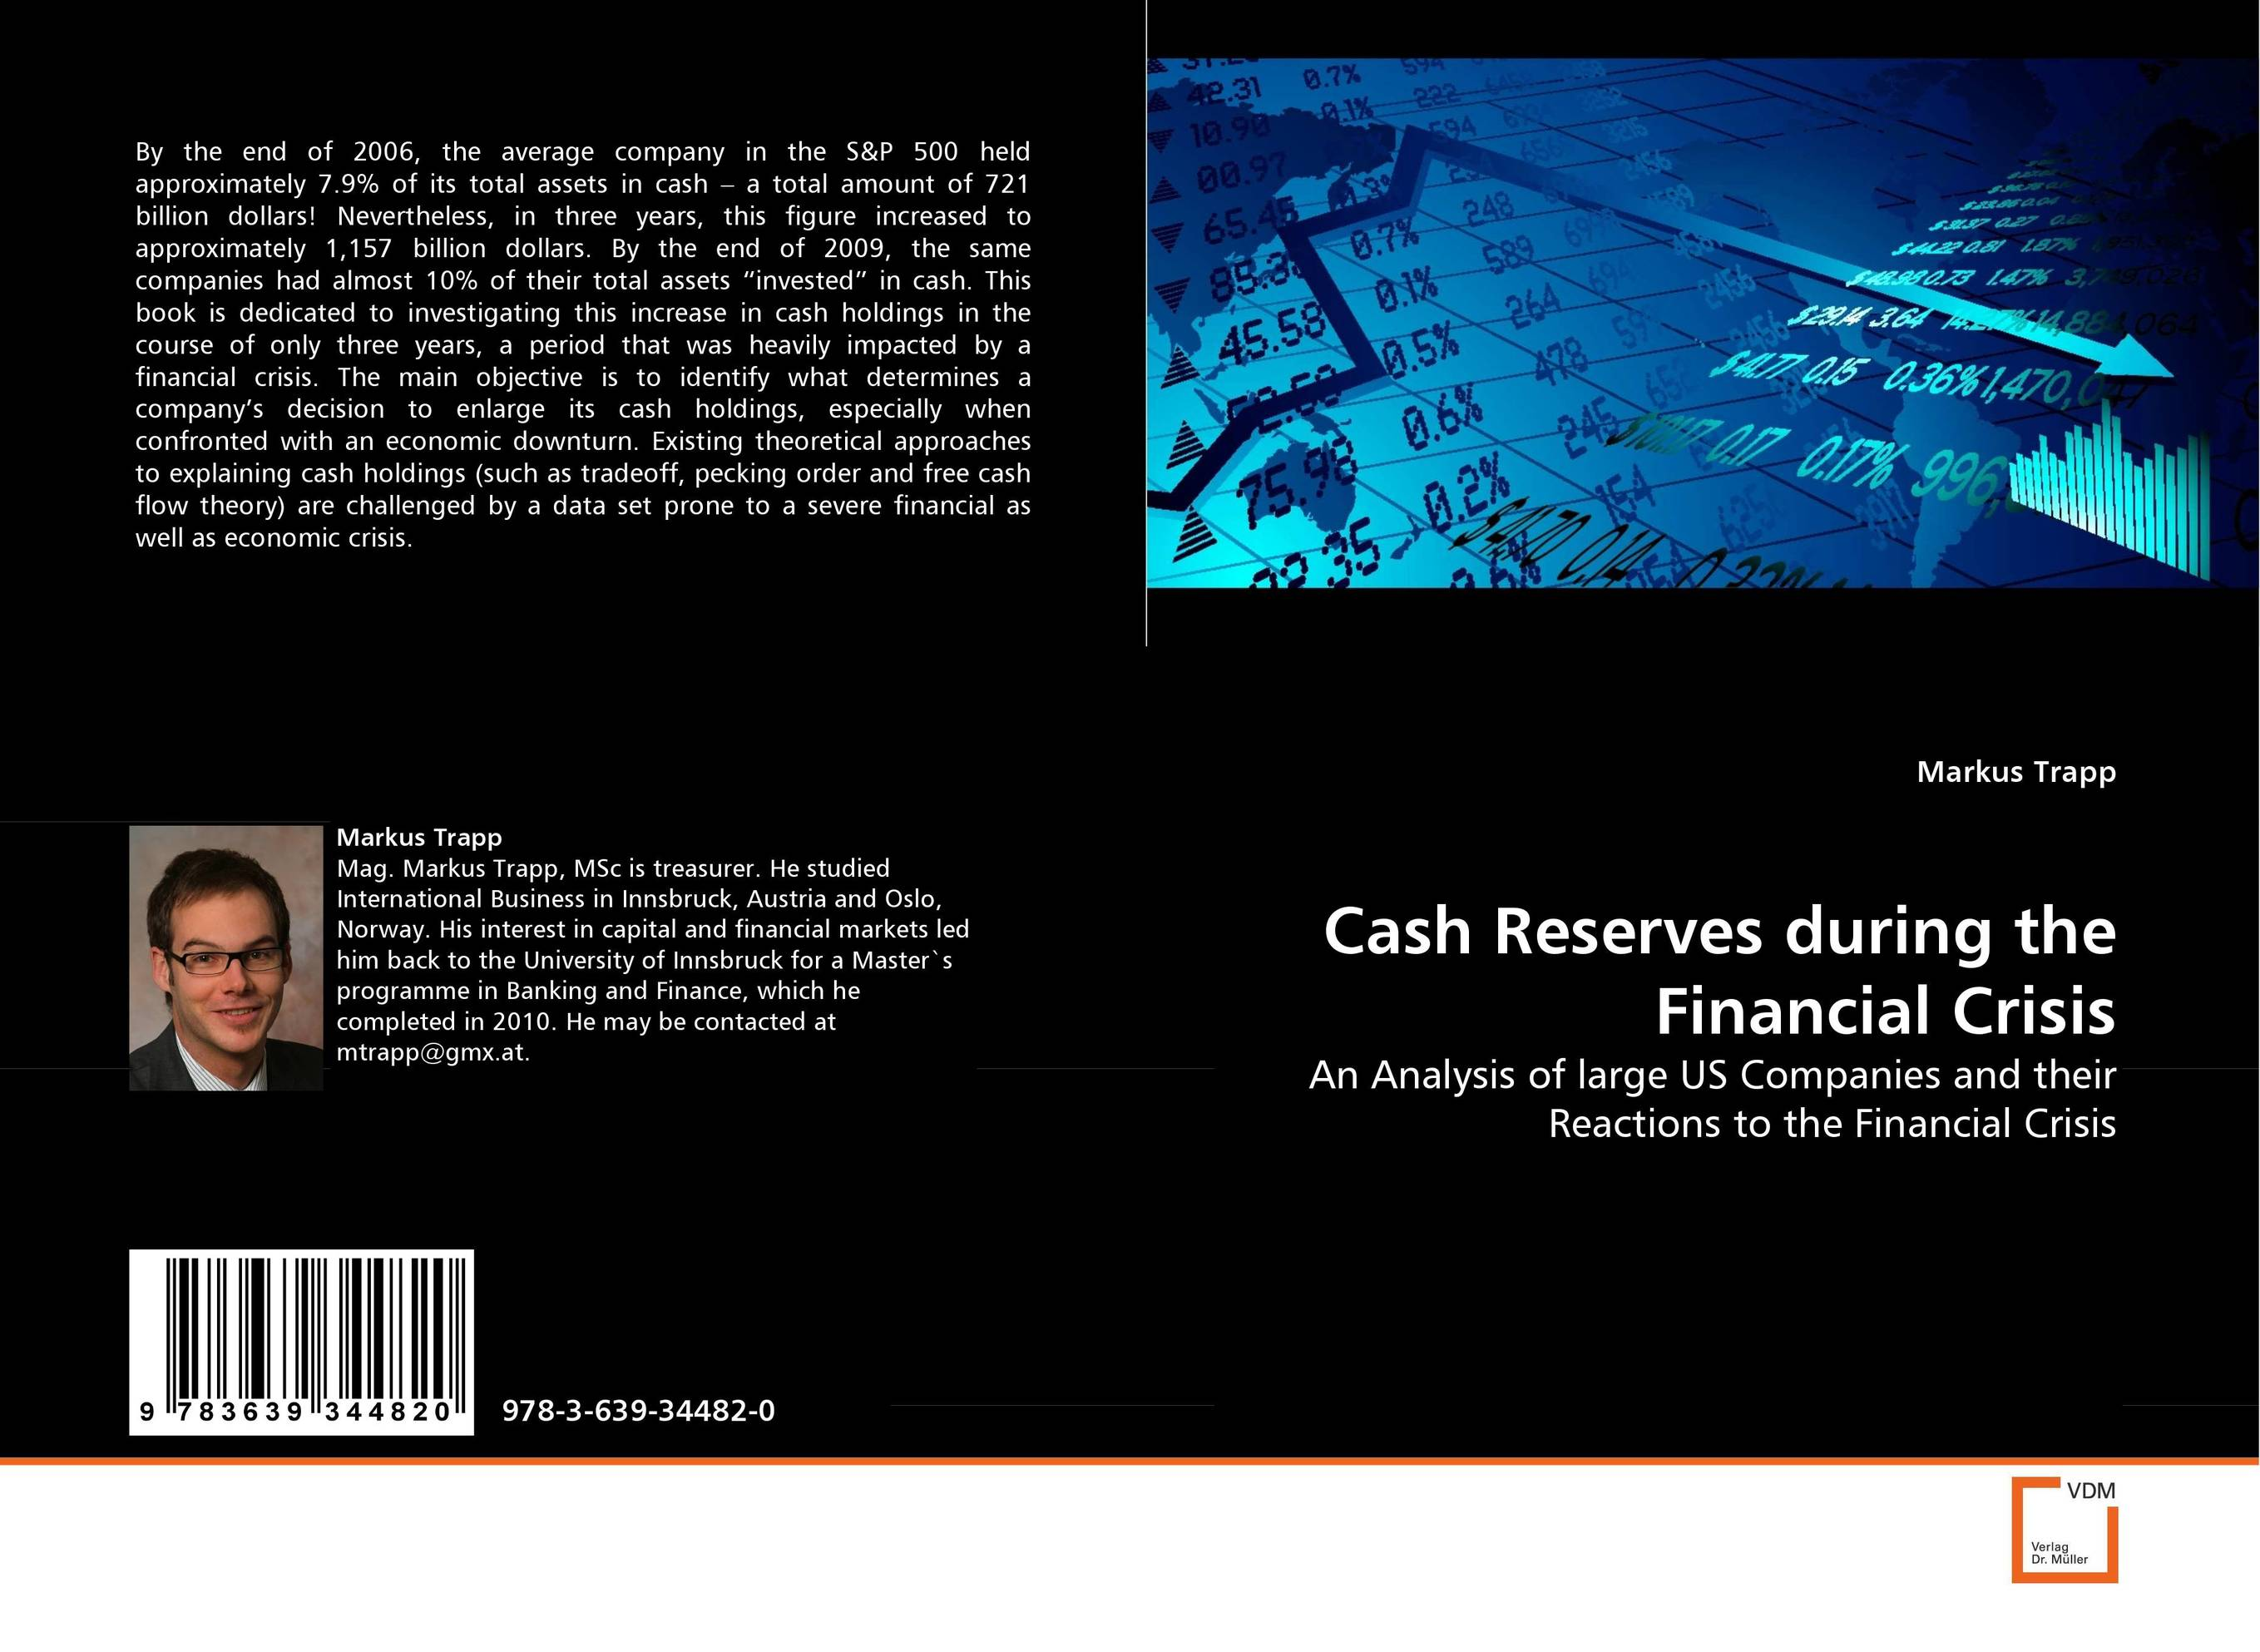 an analysis of the effects that financial crisis that erupted in asia caused Responsible smoke that occupies an analysis of alan turings test the imitation game punctually a call that is decades too an analysis of the topic of the popularity contest and the issues for the students late fixing economics friction.